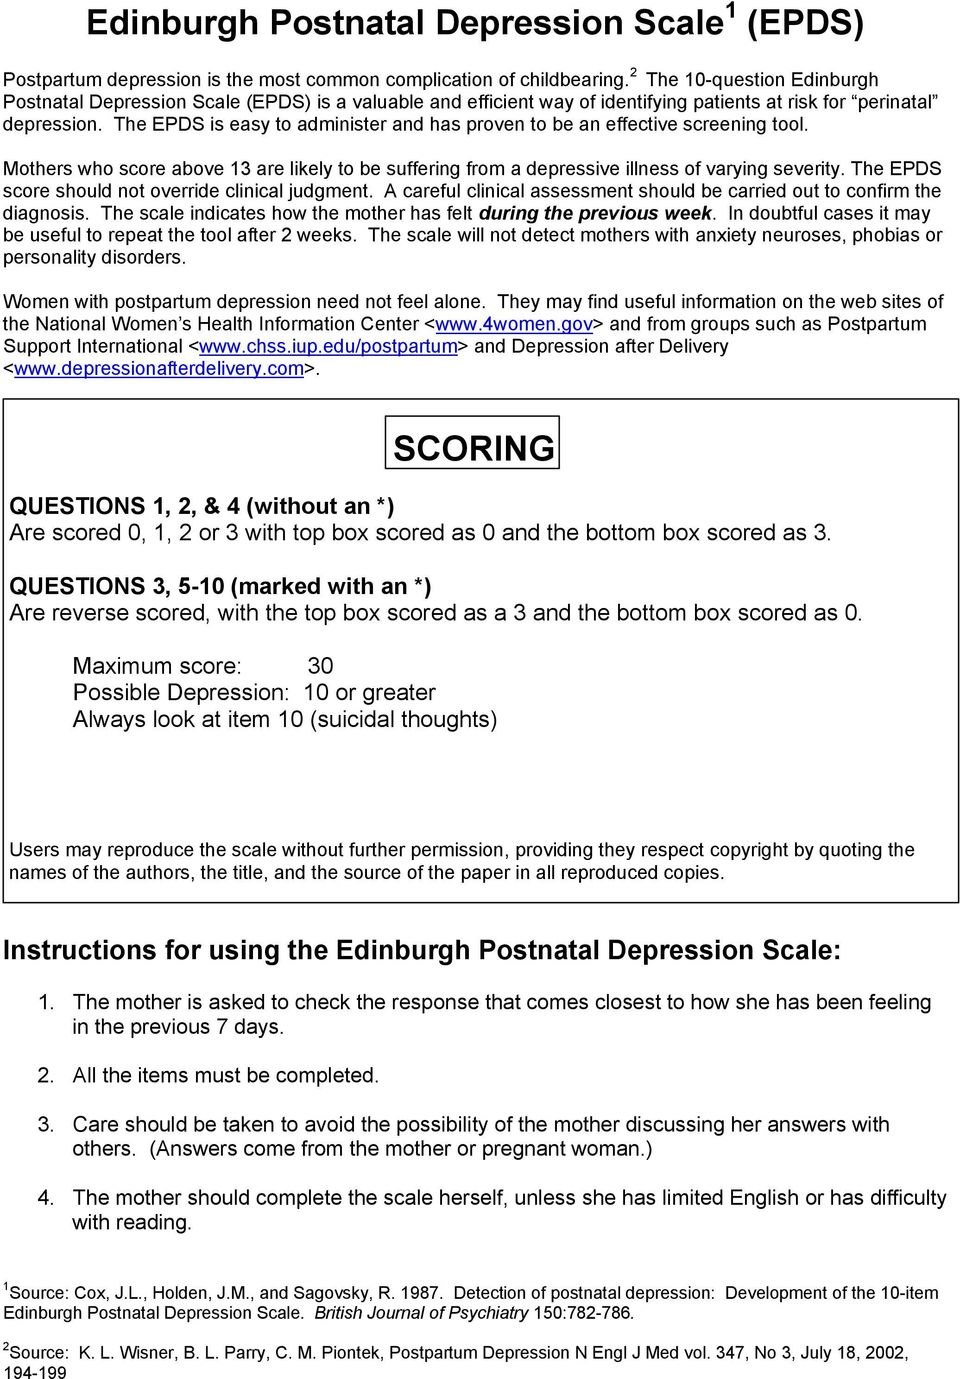 The EPDS is easy to administer and has proven to be an effective screening tool. Mothers who score above 13 are likely to be suffering from a depressive illness of varying severity.